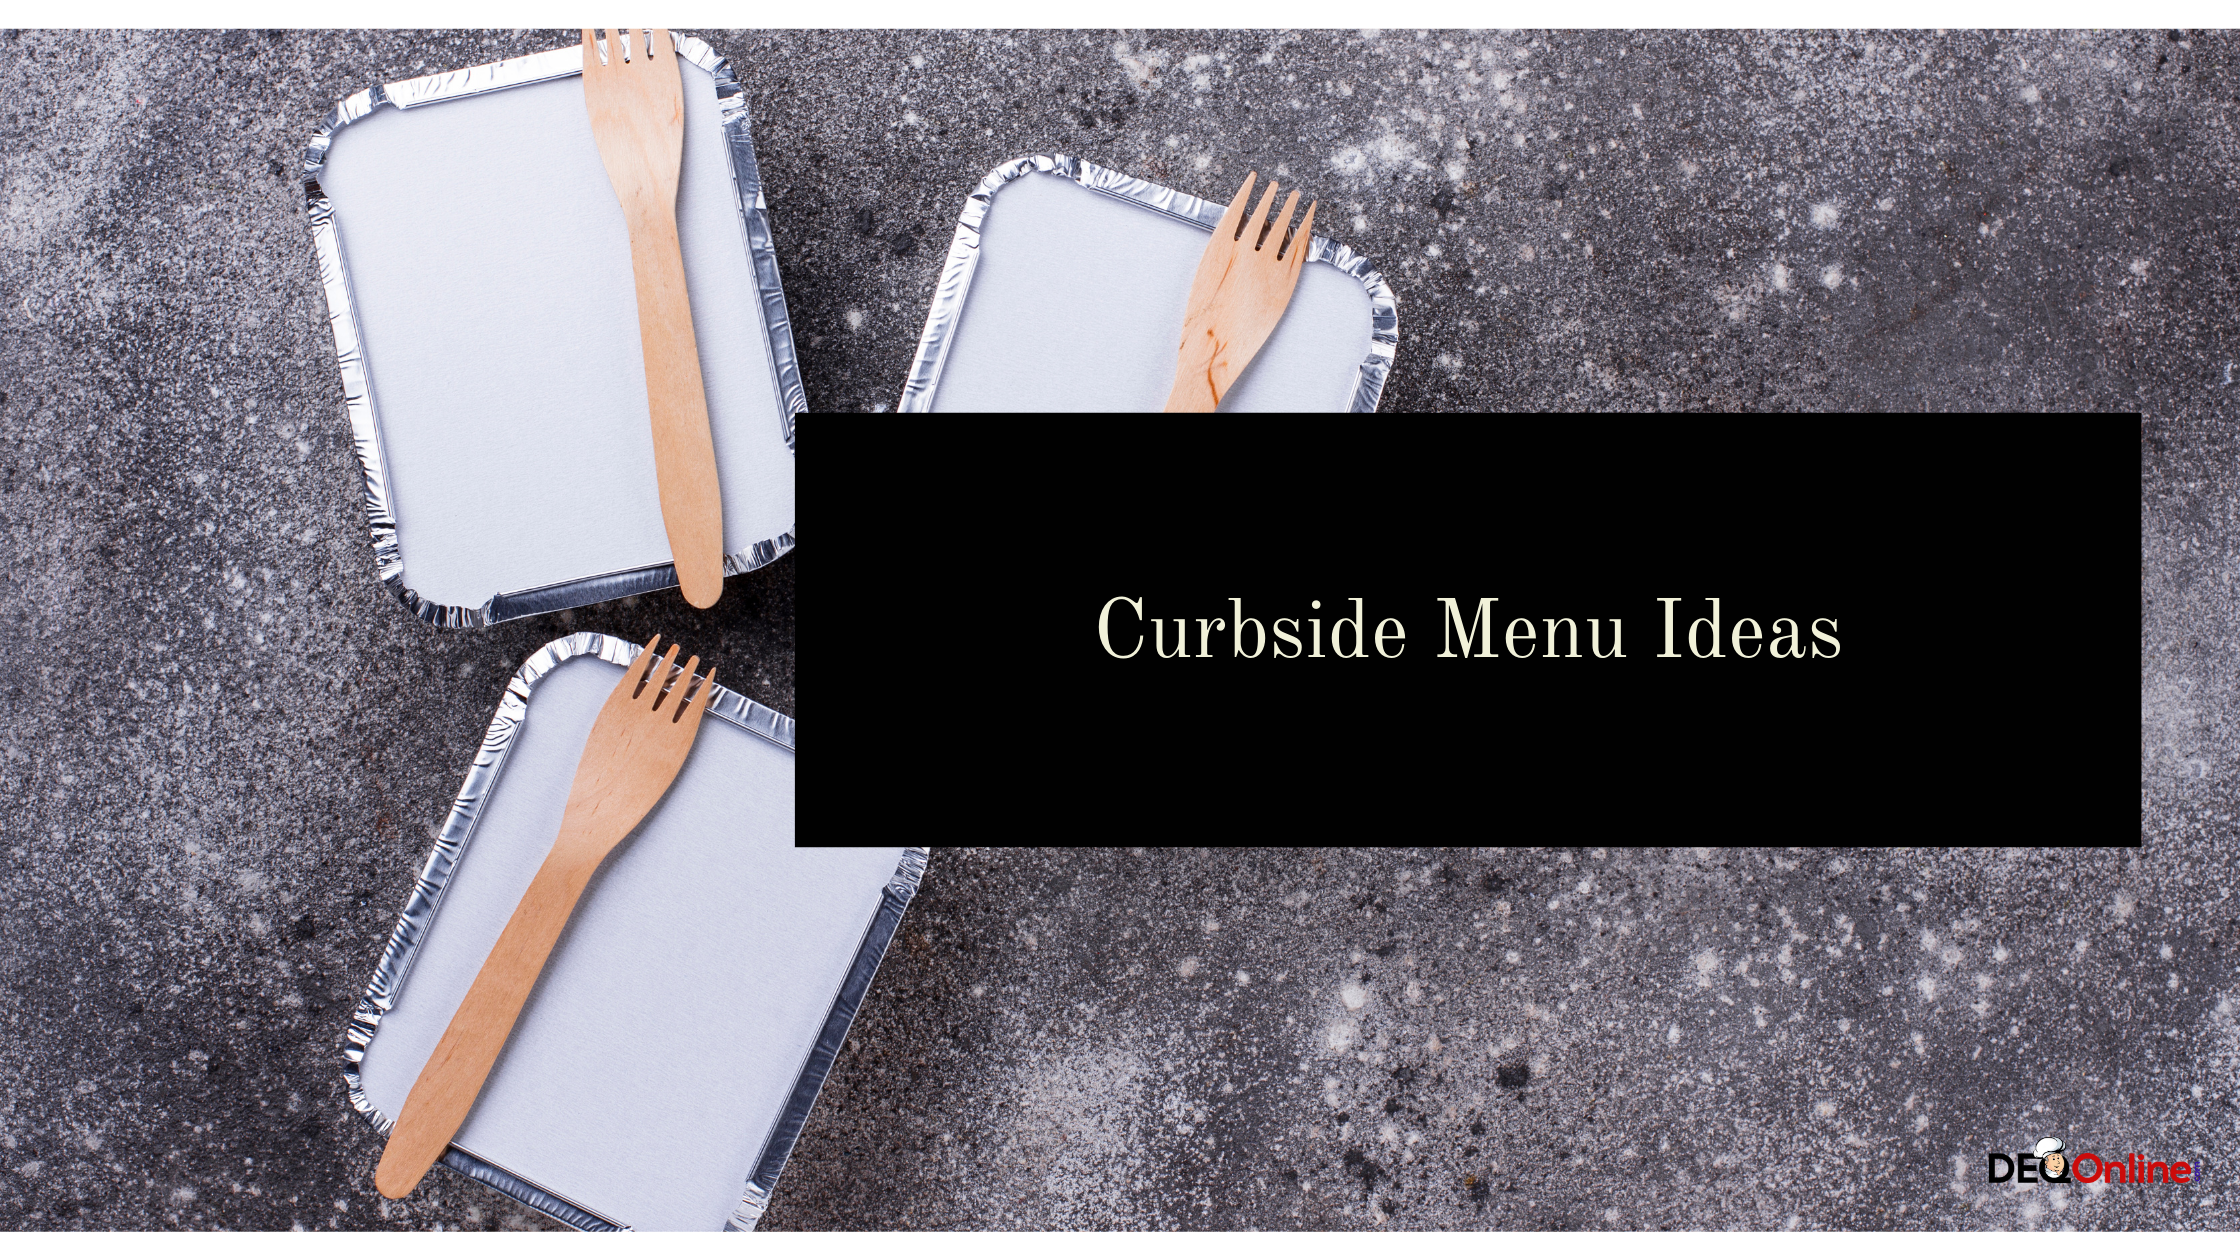 Curbside Menu Ideas